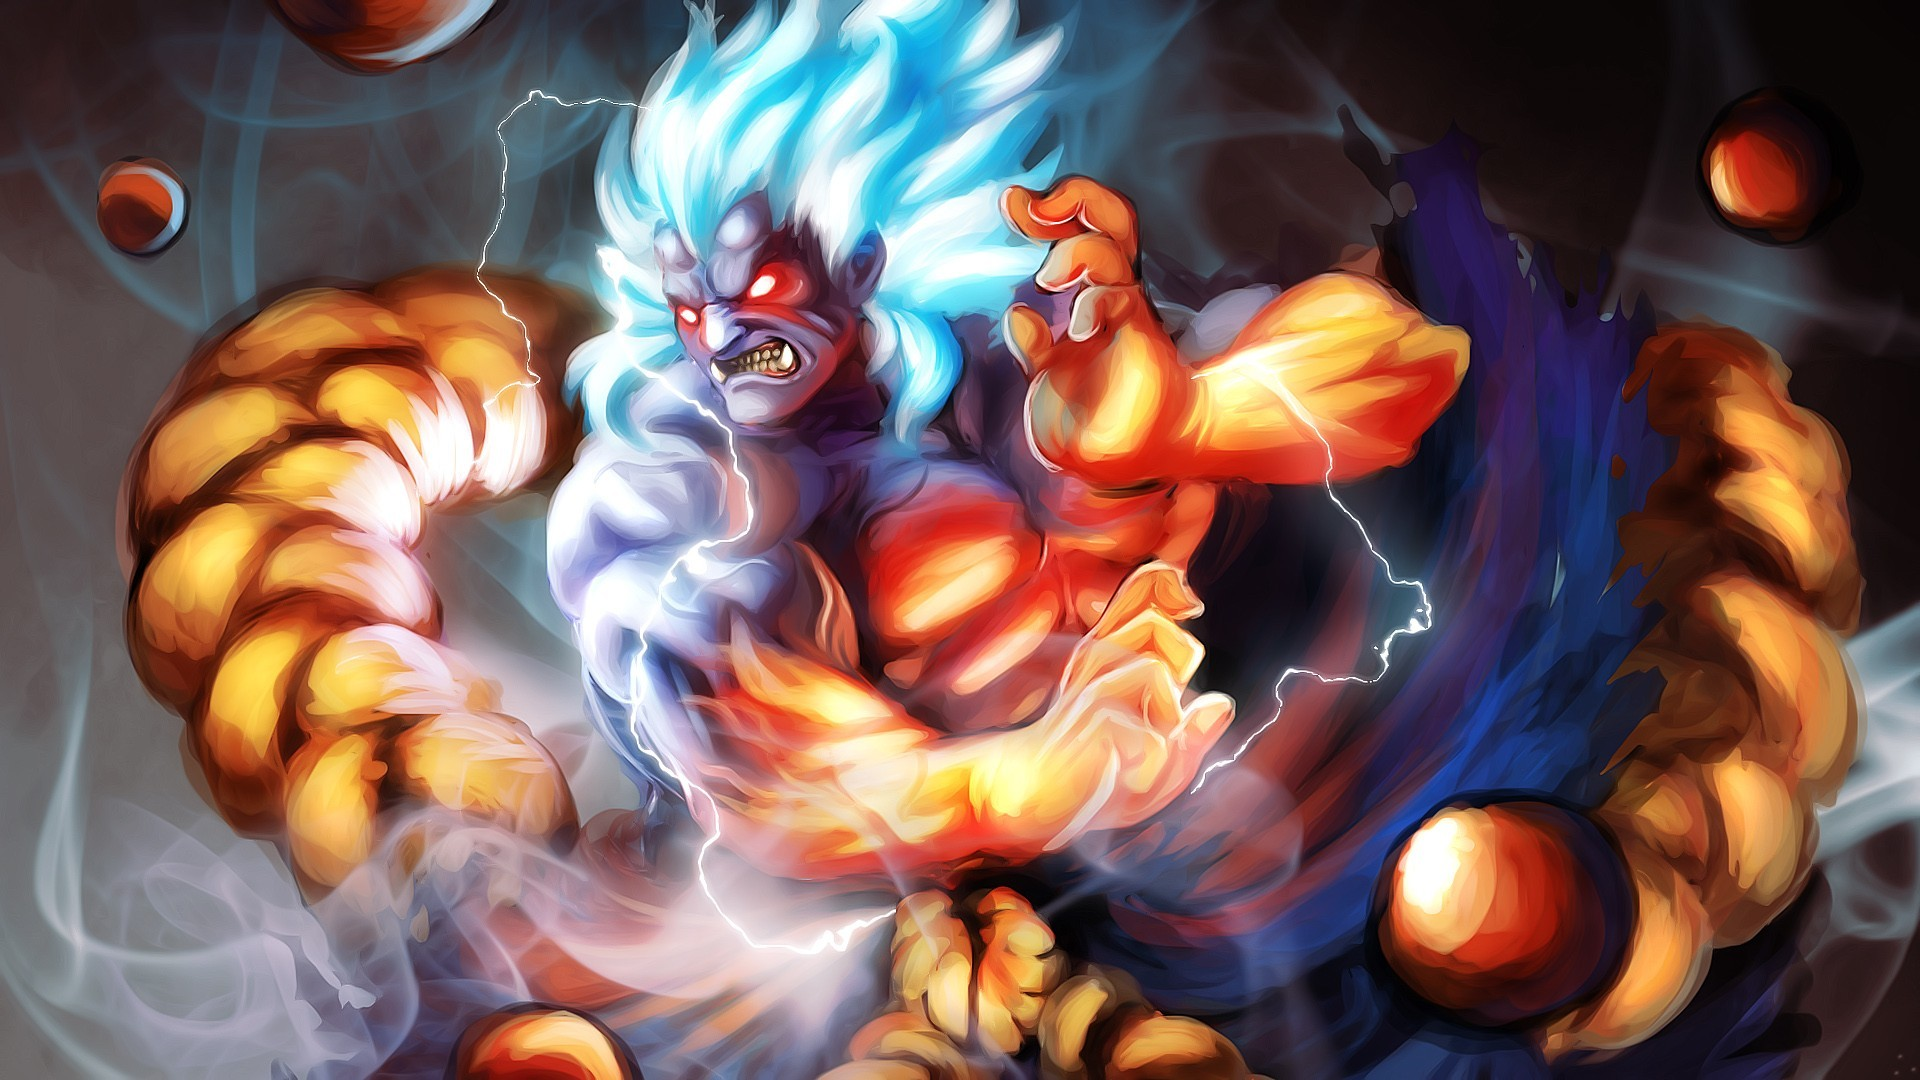 1920x1080 ...  Awesome Street Fighter HD Image Street Fighter HD Wallpapers